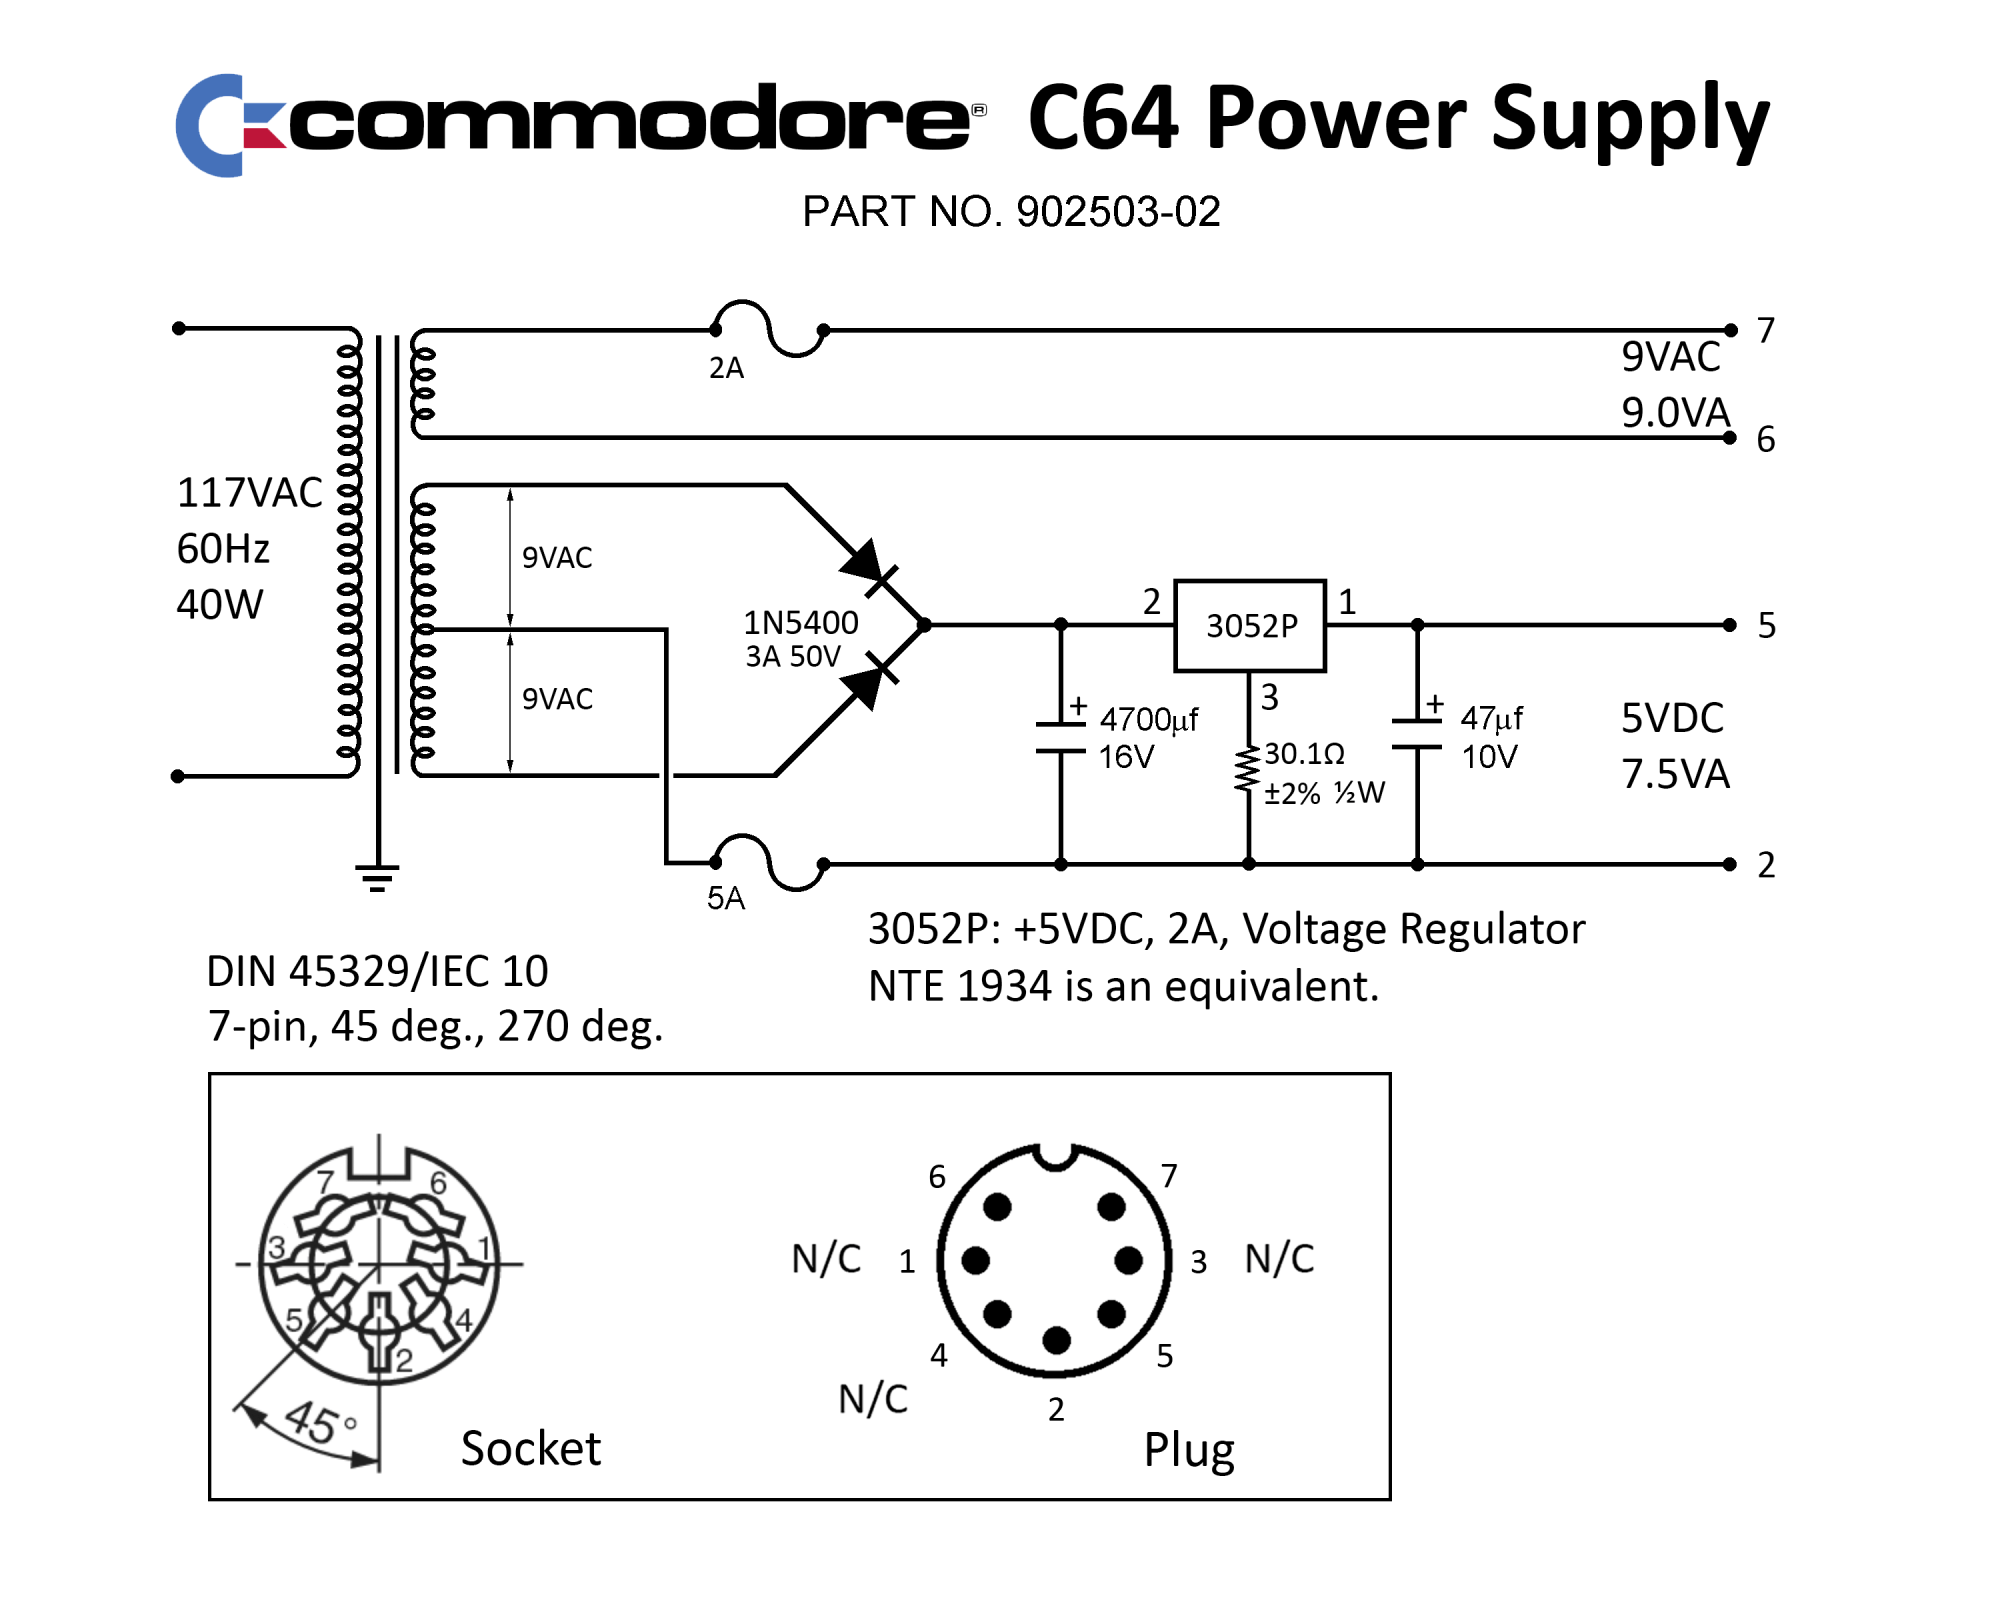 hight resolution of c64 external power supply 902503 02 png 2018 06 22 384569 ps schematic